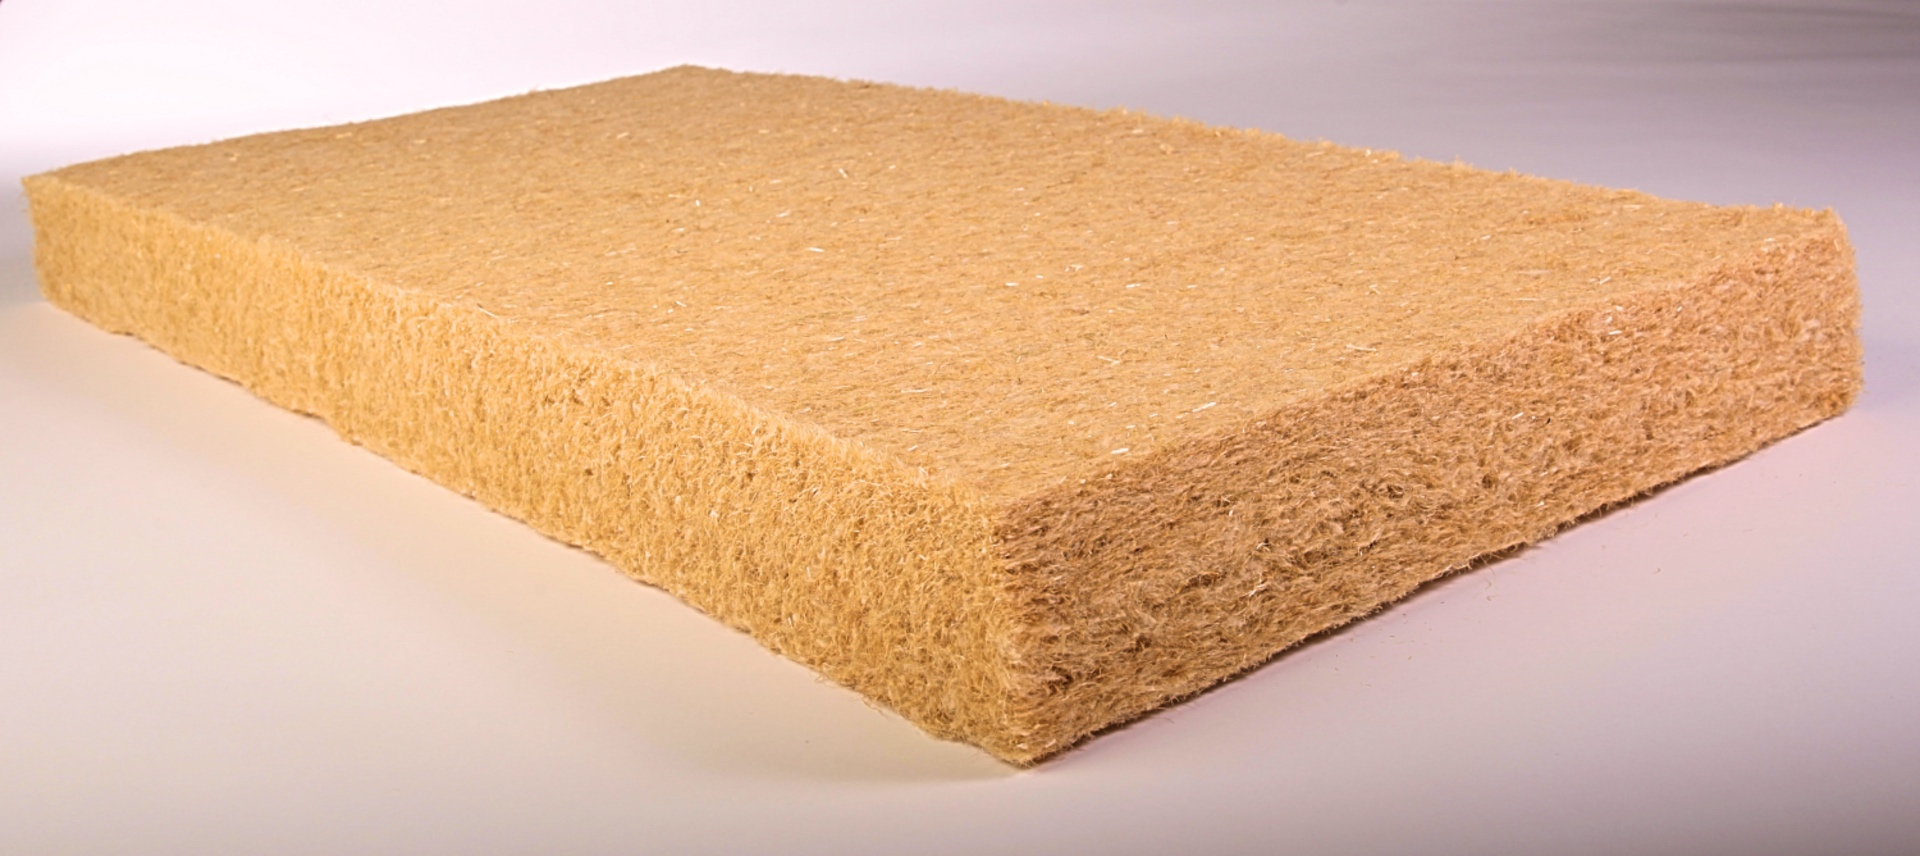 KOBEVLIES V products from natural fibres such as cotton, jute, wool, flax